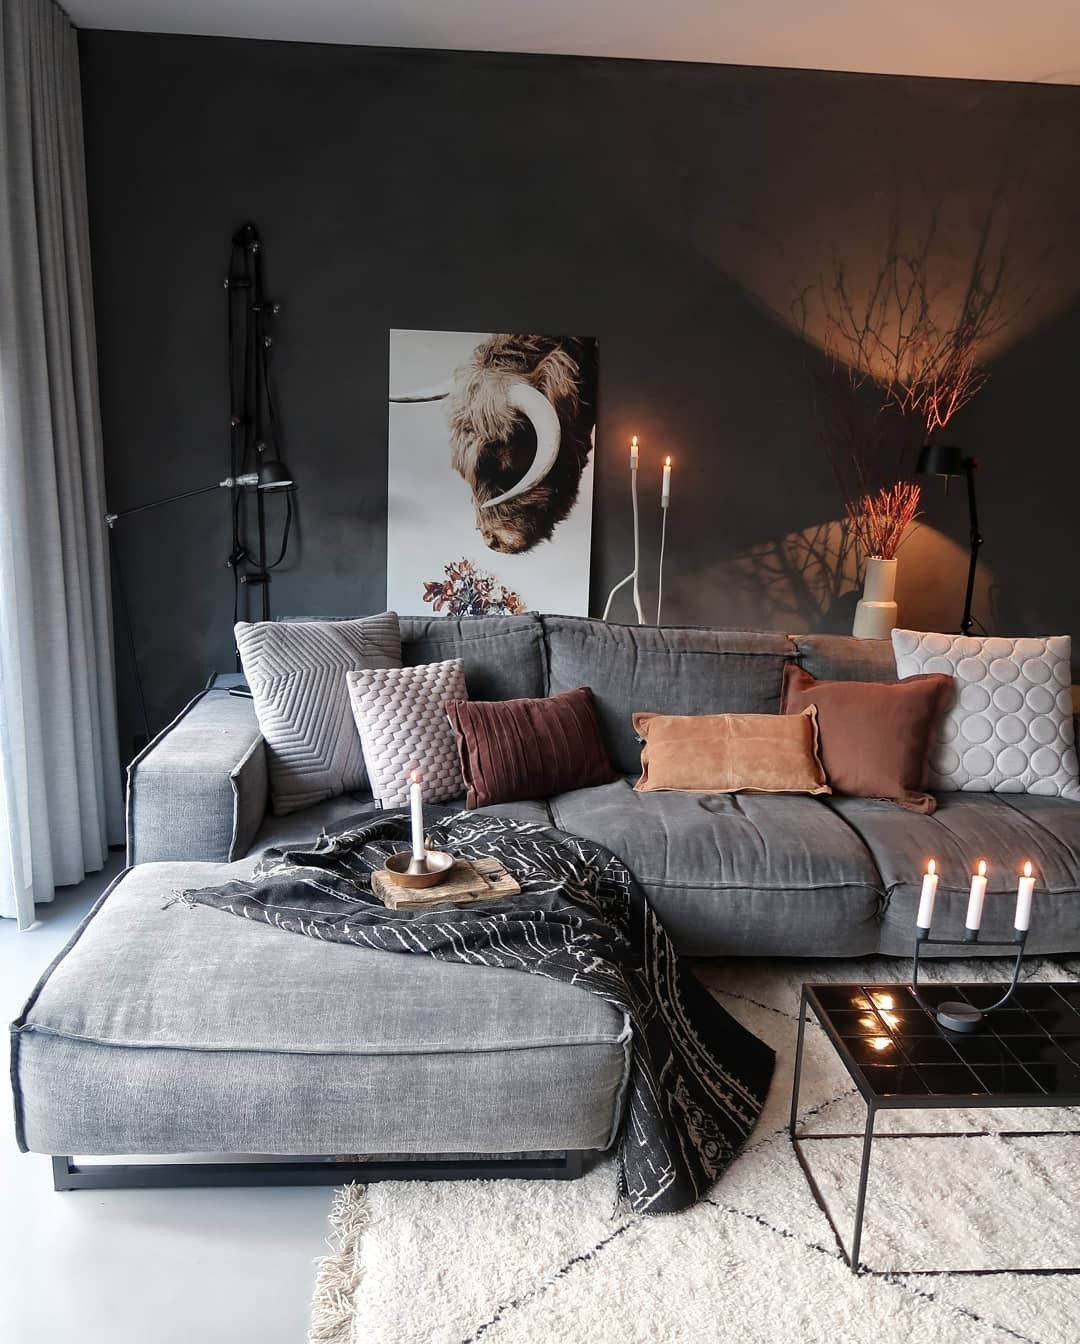 16 Interior Design Ideas And Creative Ways To Maximize: Find The Perfect Lighting For Your Brand New Living Room